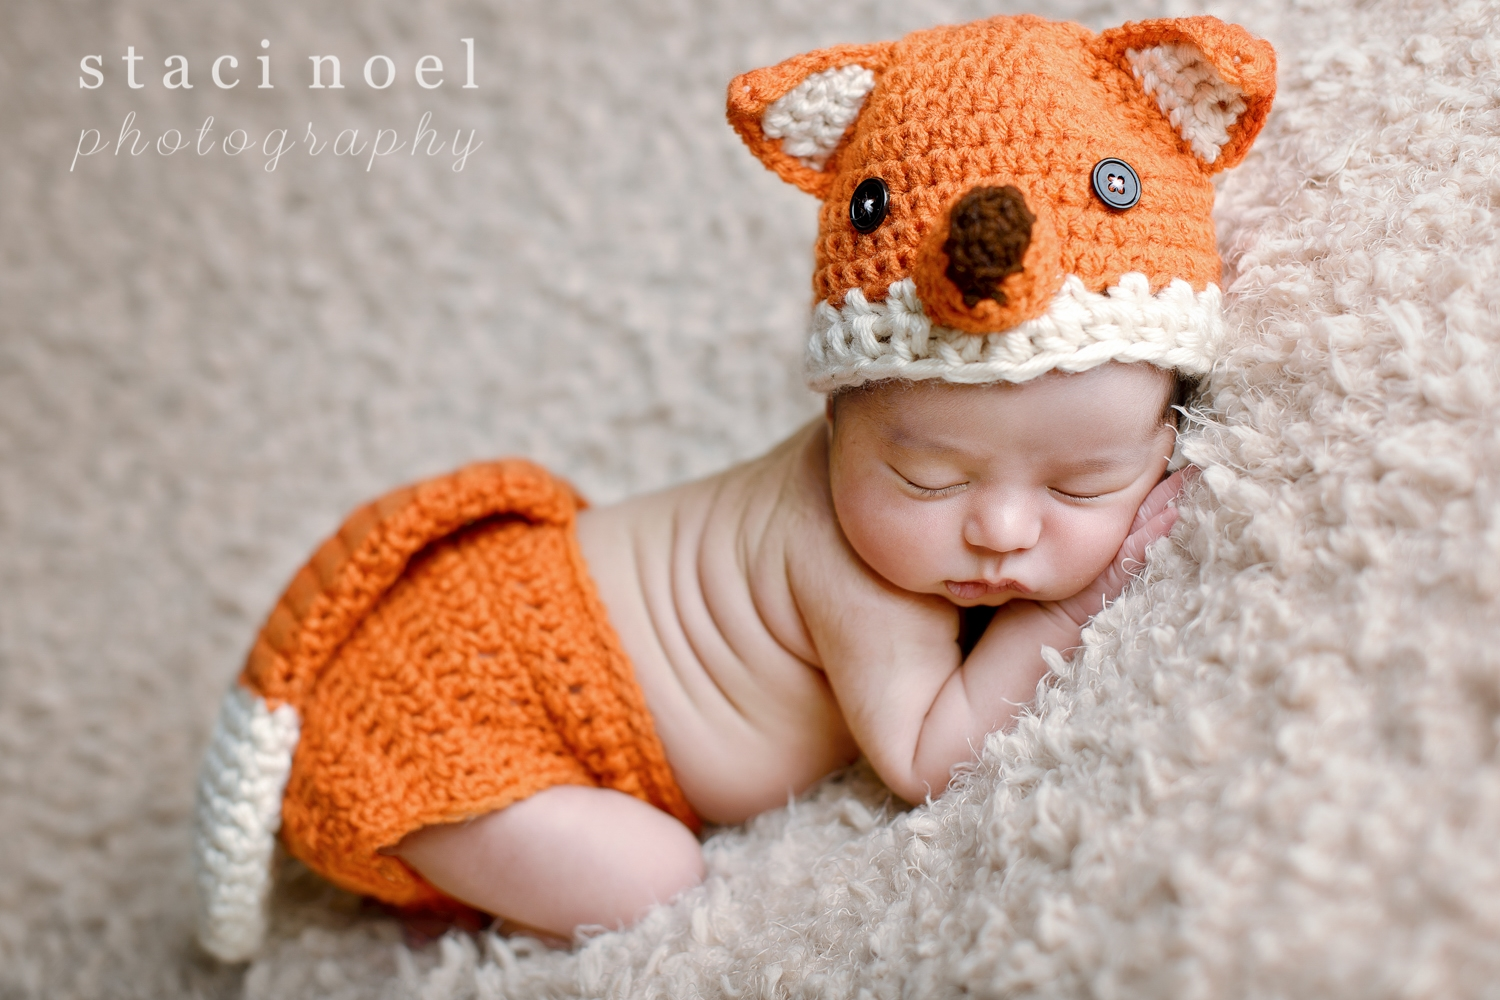 Charlotte NC newborn baby girl photographed by Staci Noel photography in crocheted fox outfit on tan backdrop